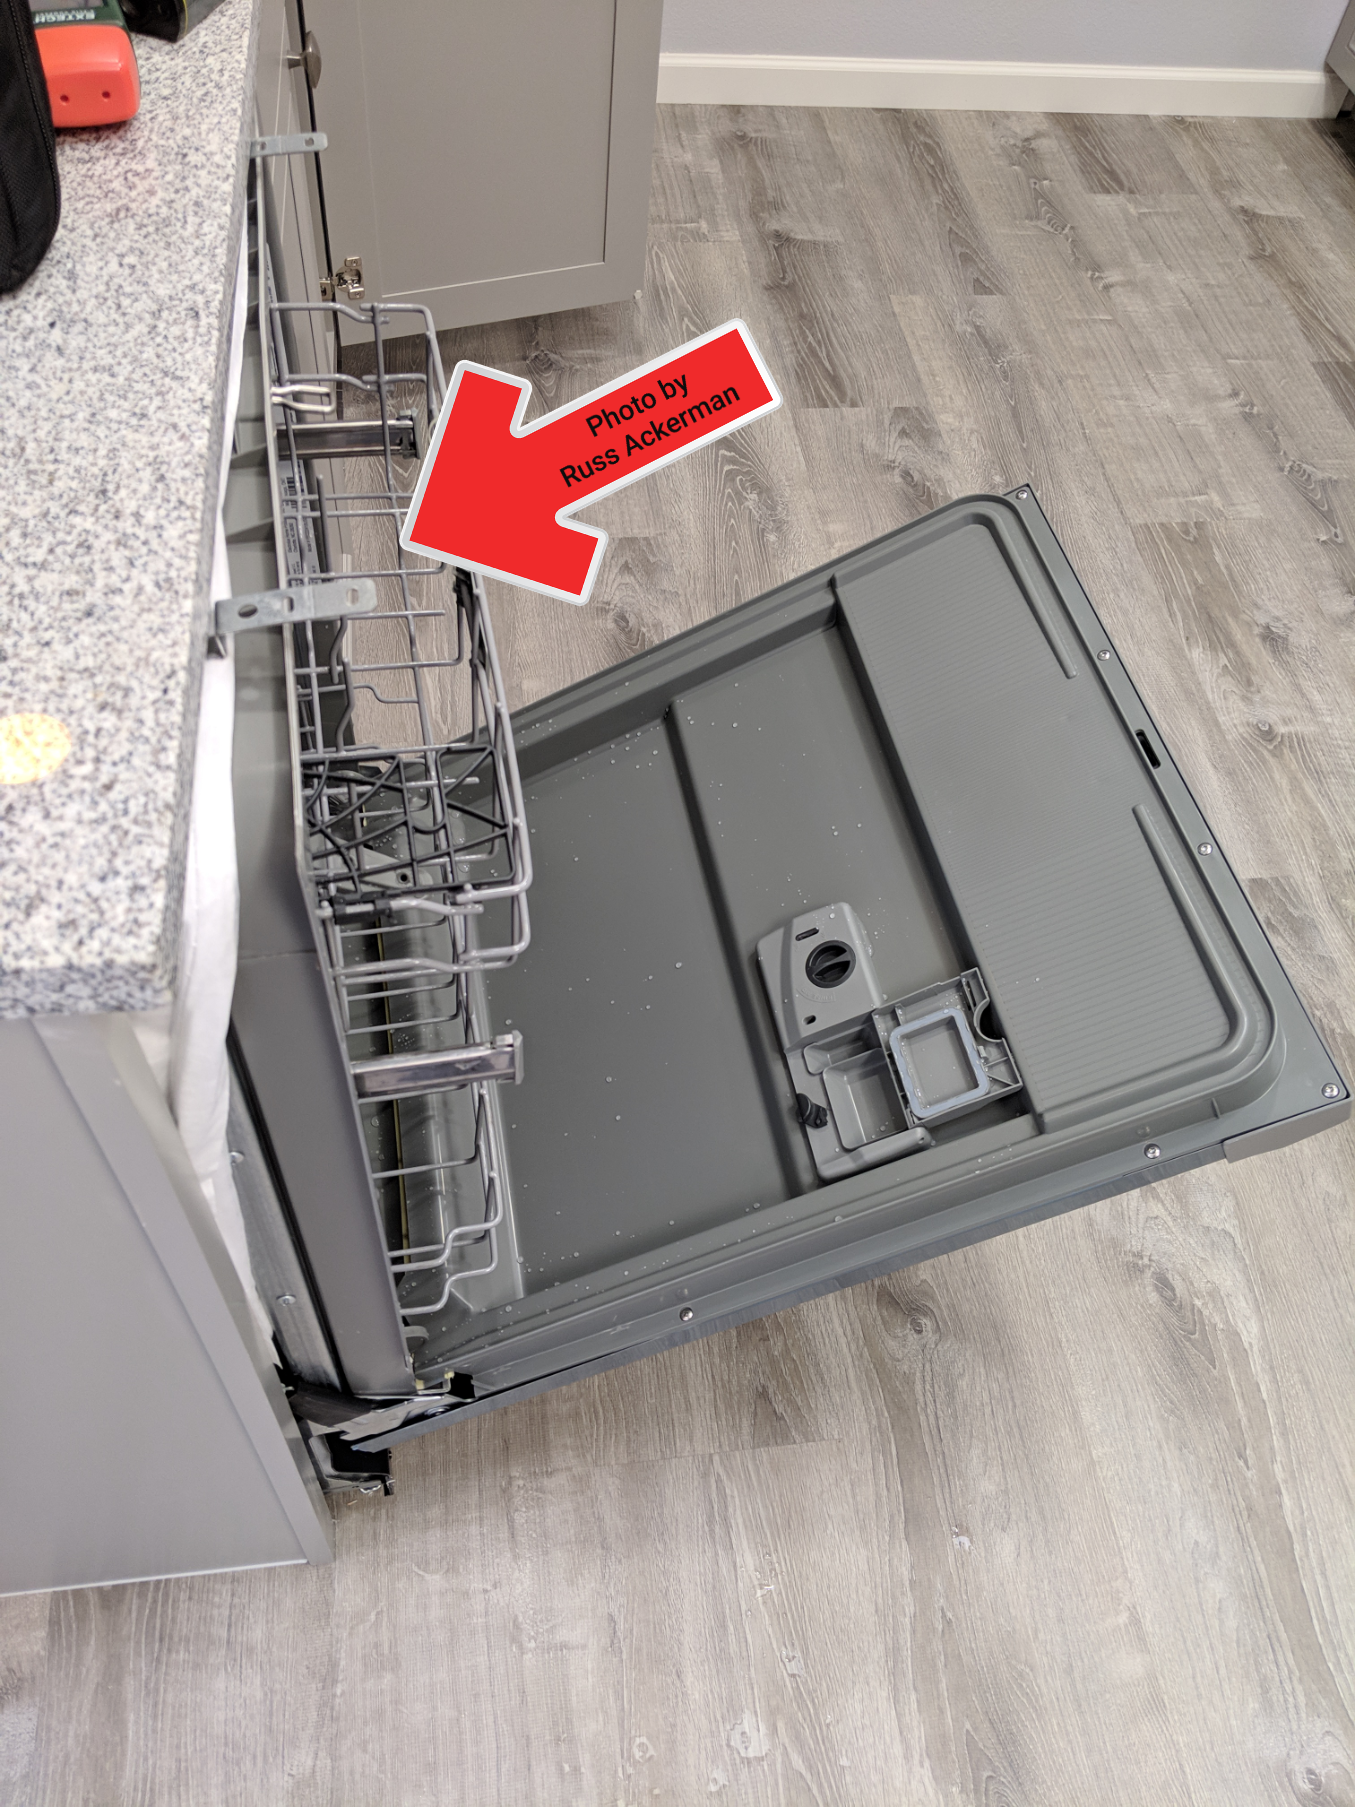 This dishwasher was loose and needs to be secured to the bottom of the countertop or cabinet sides.